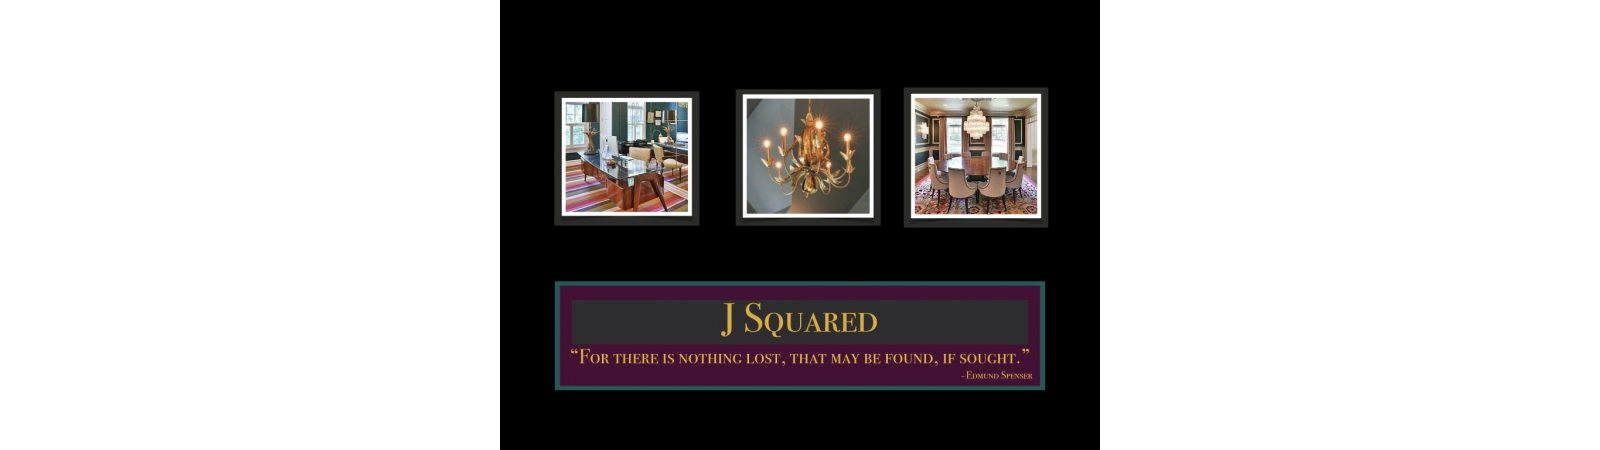 J Squared...Curated Curiosities | Auction Ninja